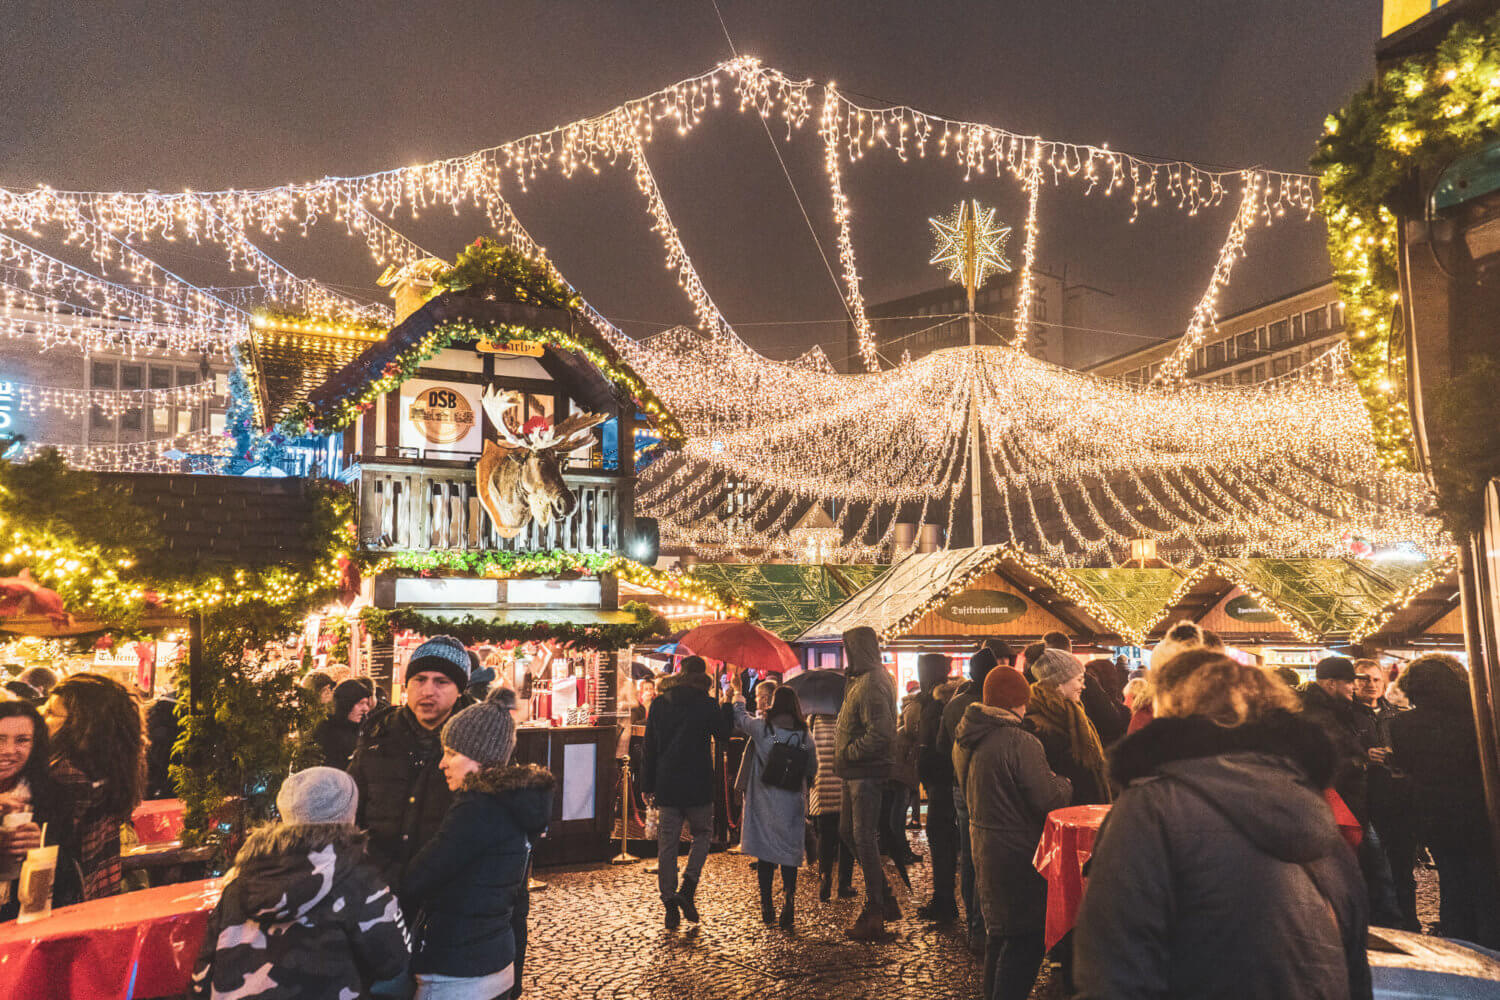 Christmas Markets In Germany 2019.Dusseldorf Christmas Markets Guide 2019 Where To Go What